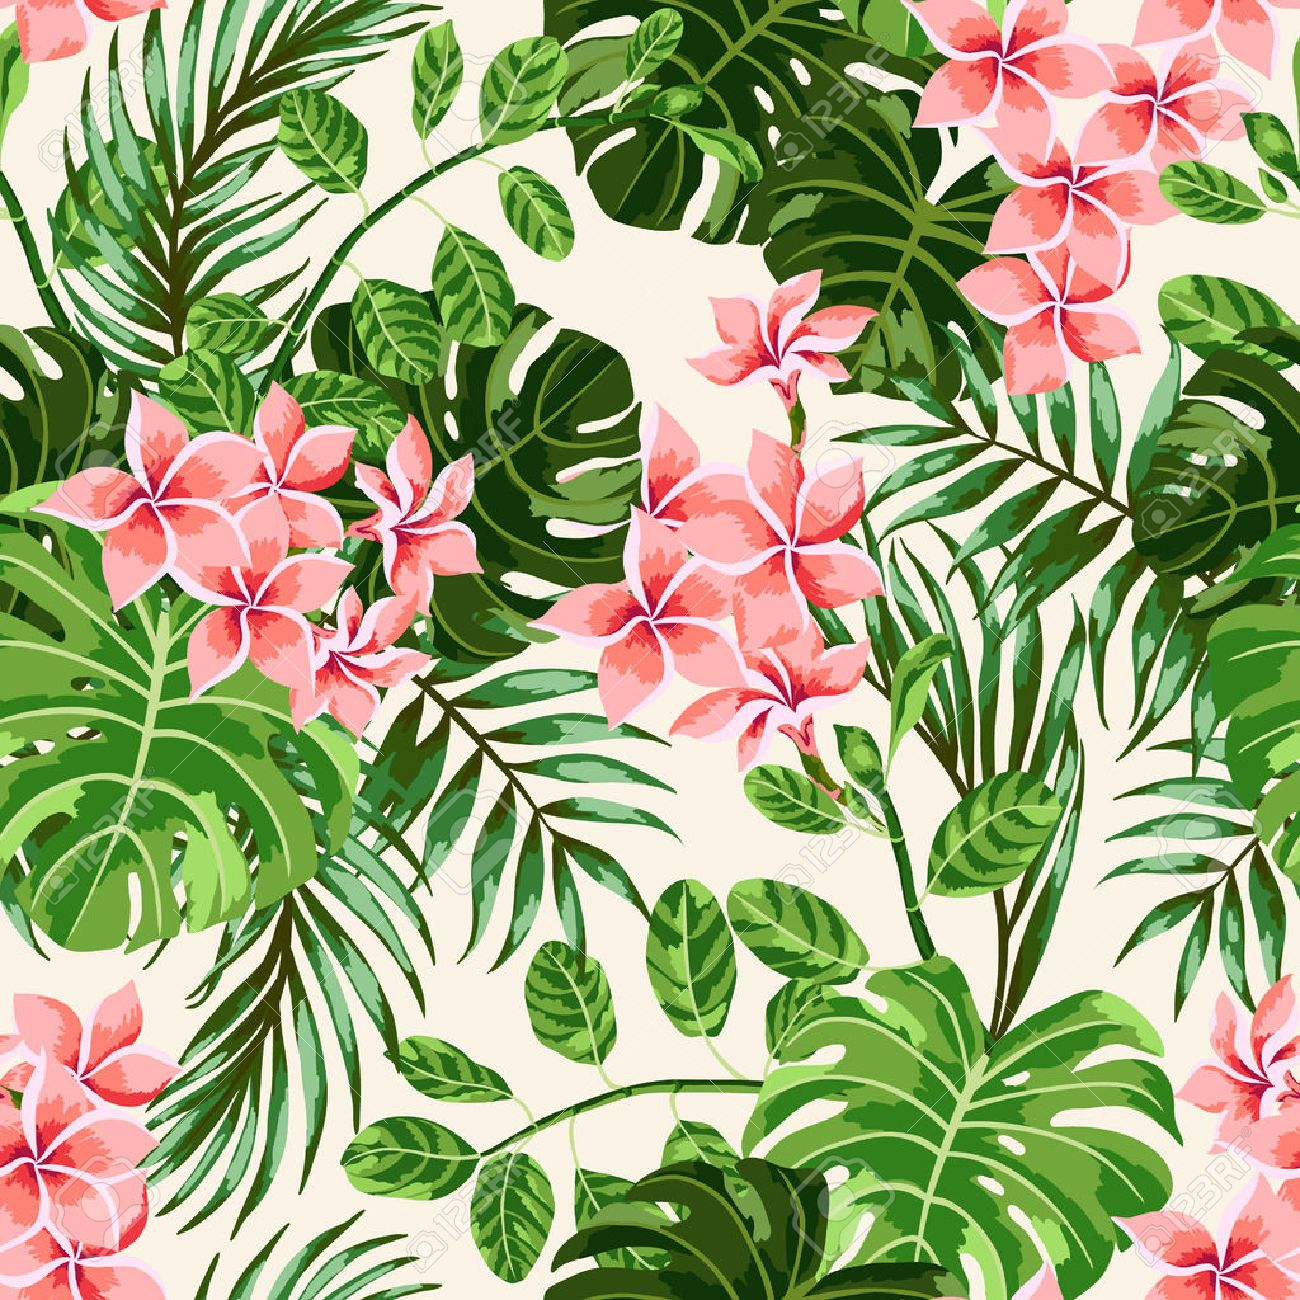 Seamless Exotic Pattern With Tropical Leaves And Flowers Vector Royalty Free Cliparts Vectors And Stock Illustration Image 39756421 Alibaba.com offers 1,211 tropical flower products. seamless exotic pattern with tropical leaves and flowers vector